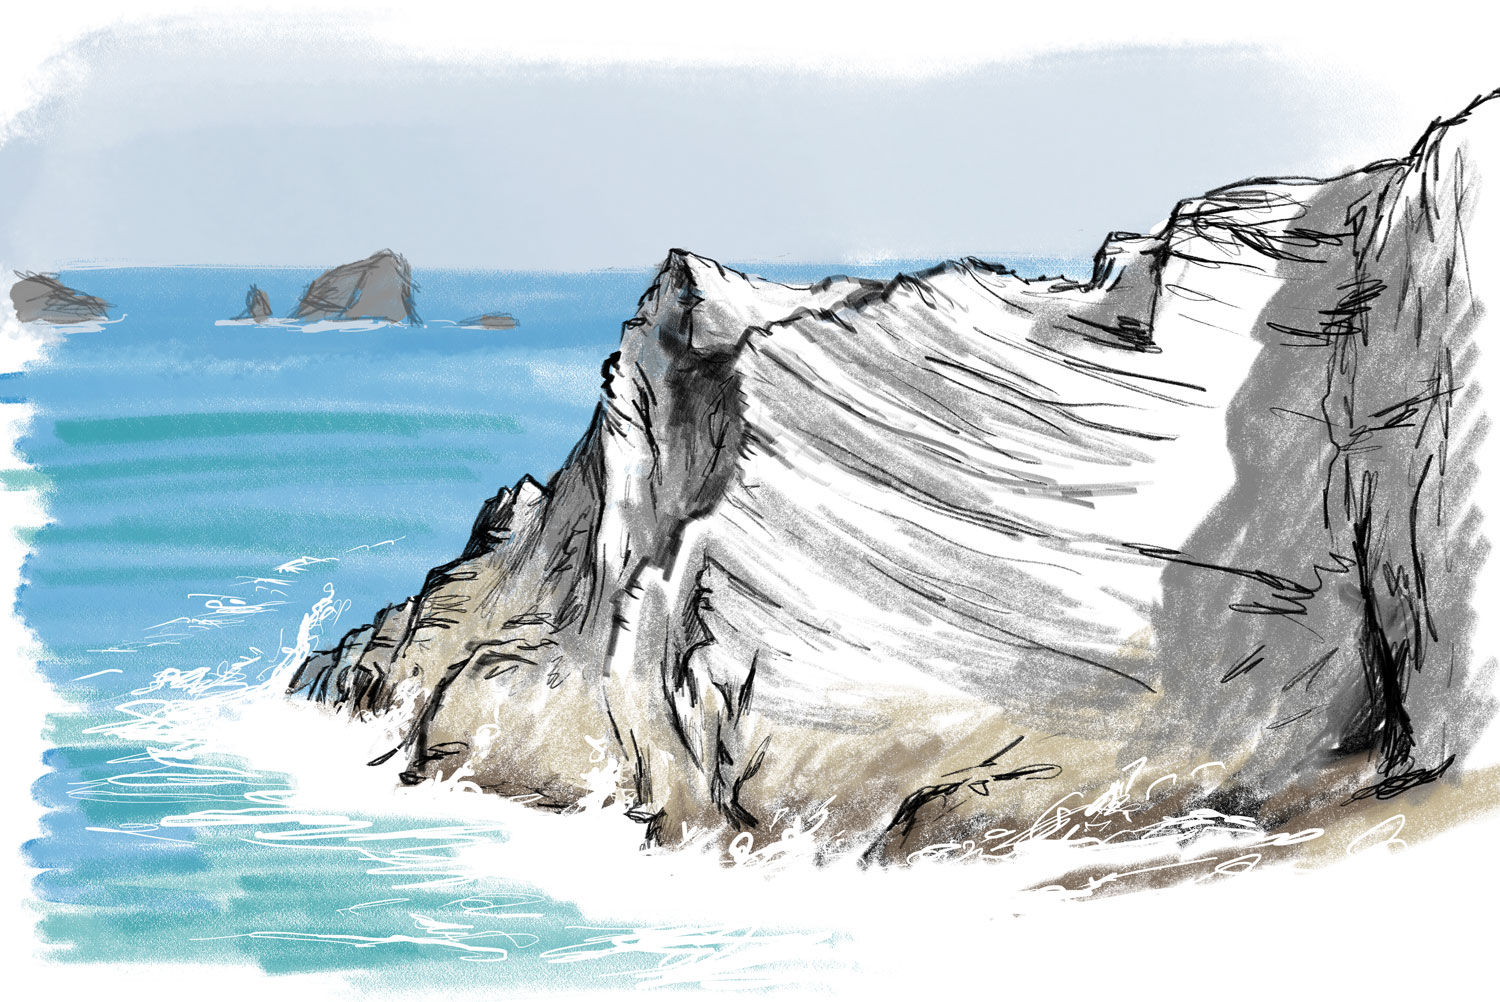 Fox Cove - digital drawing by artist Jonathan Chapman